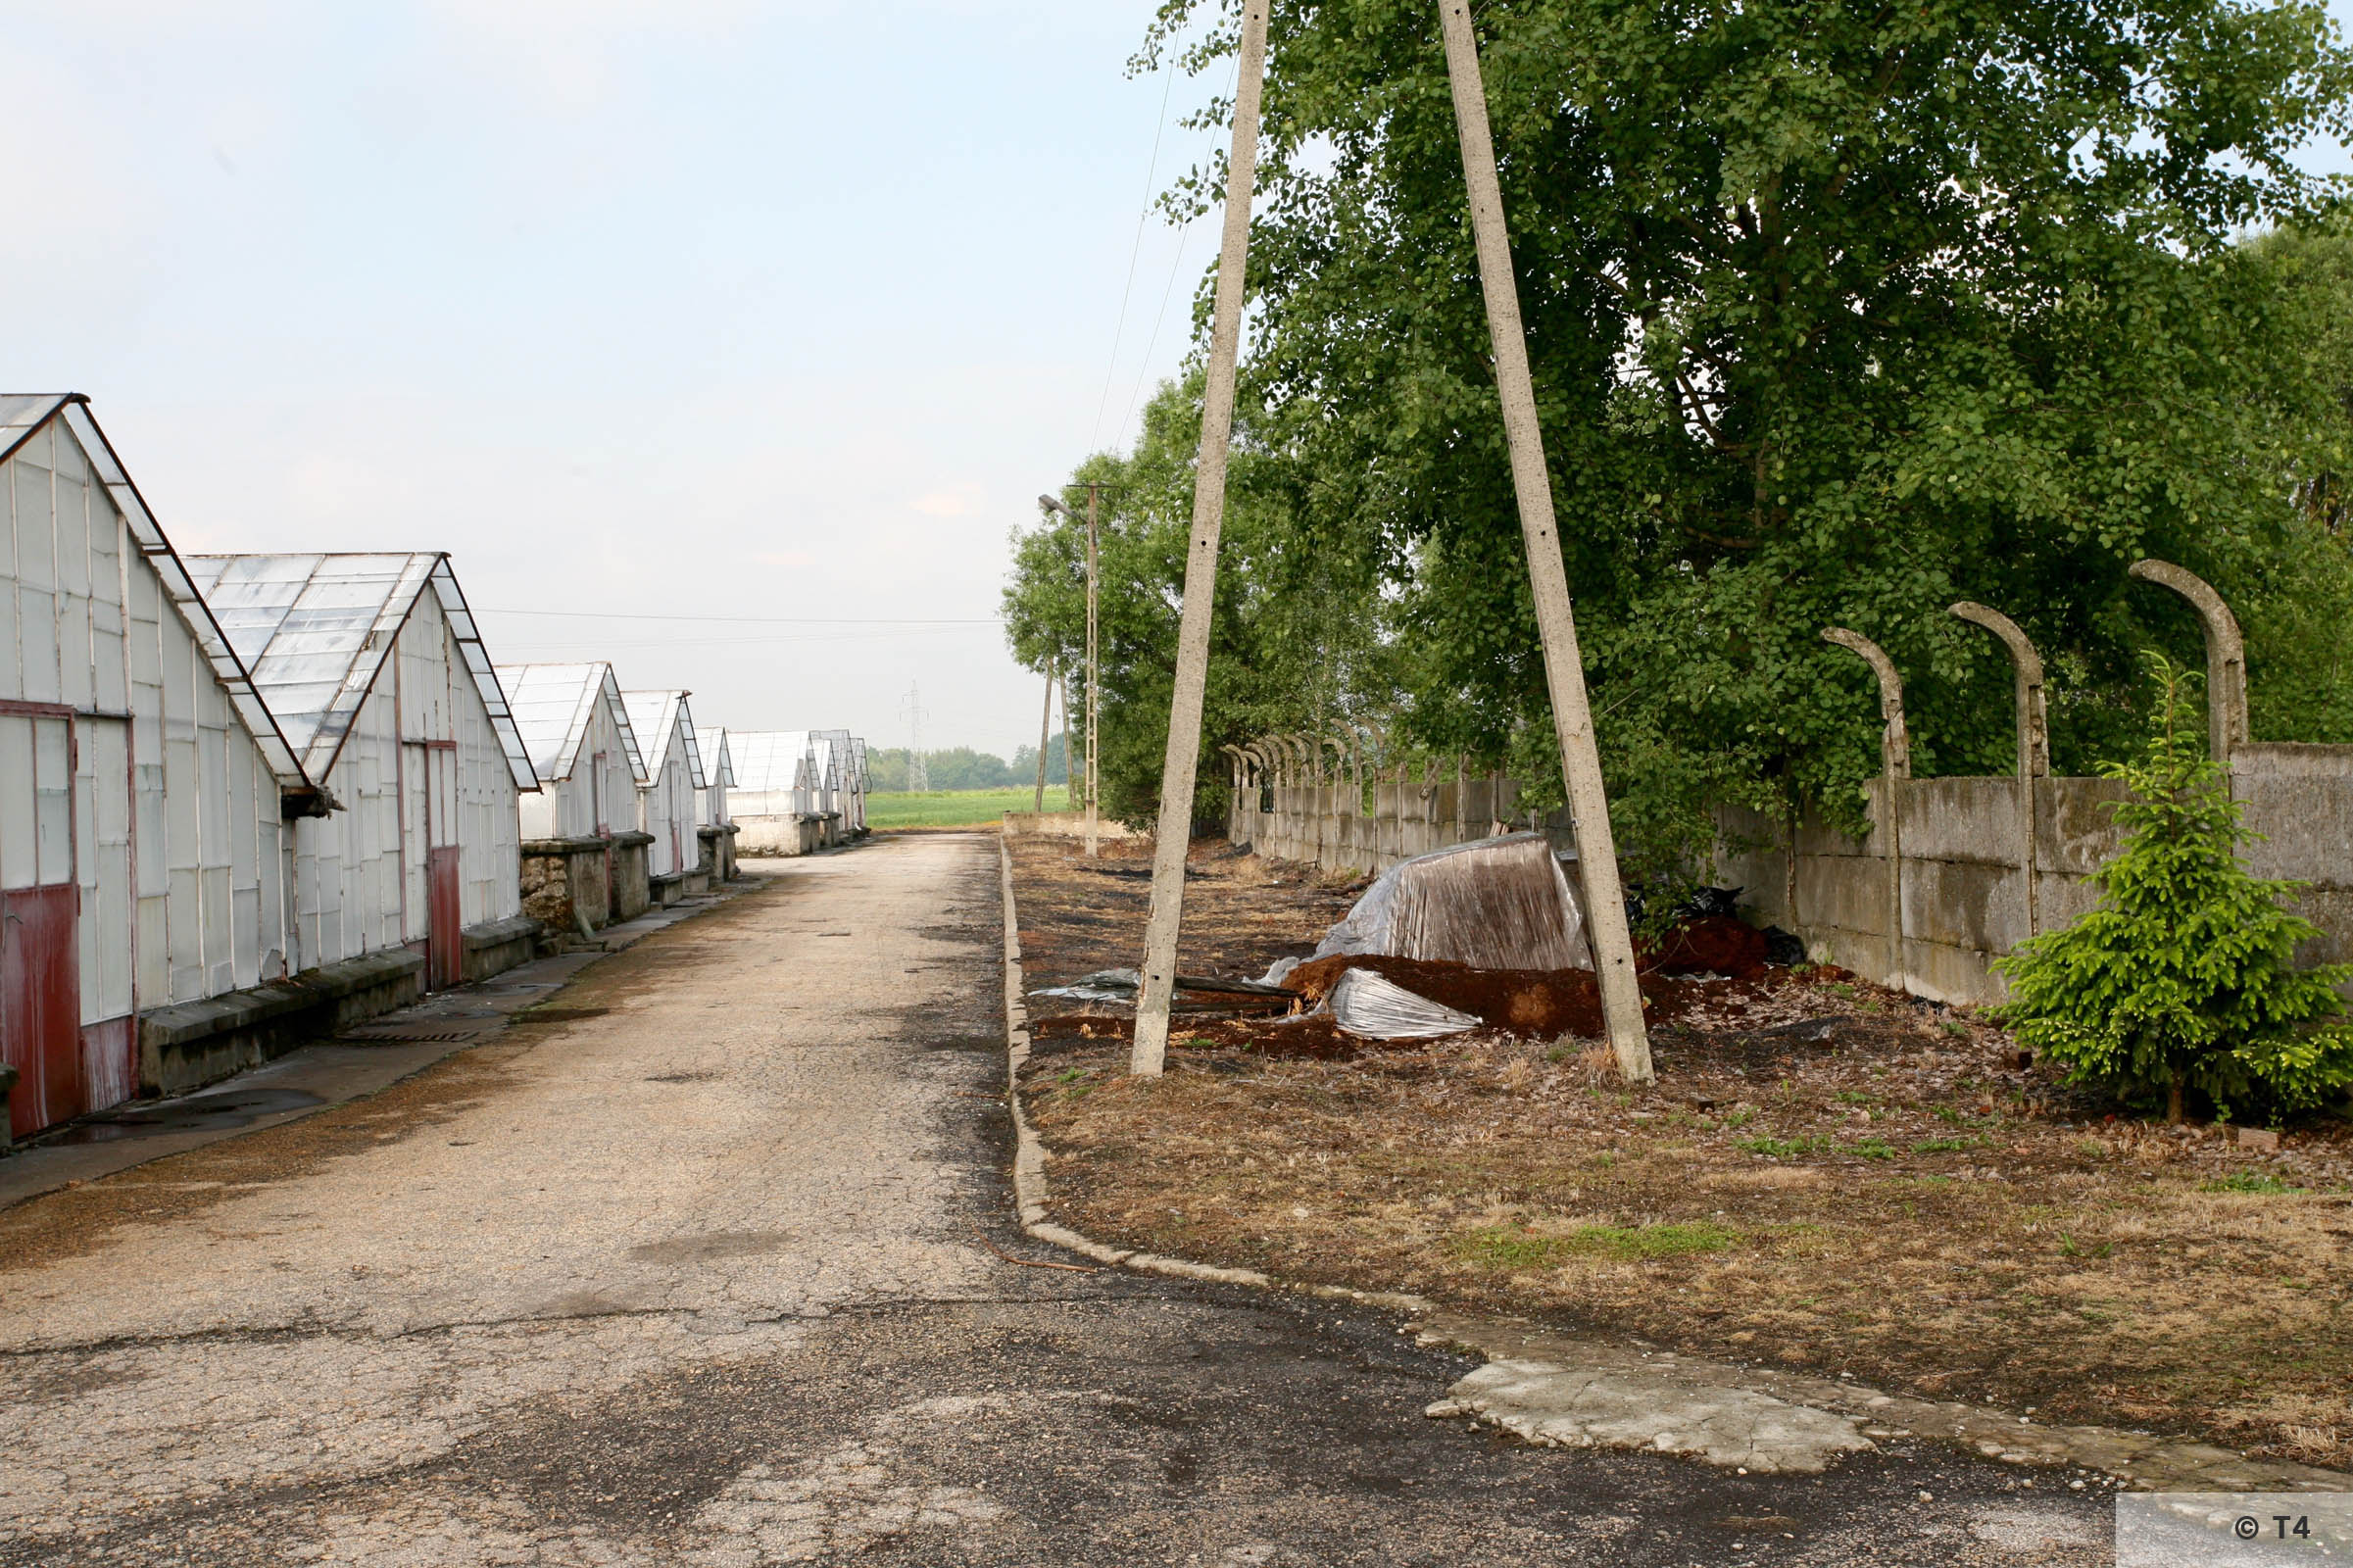 New greenhouses and fence posts. 2006 T4 5164